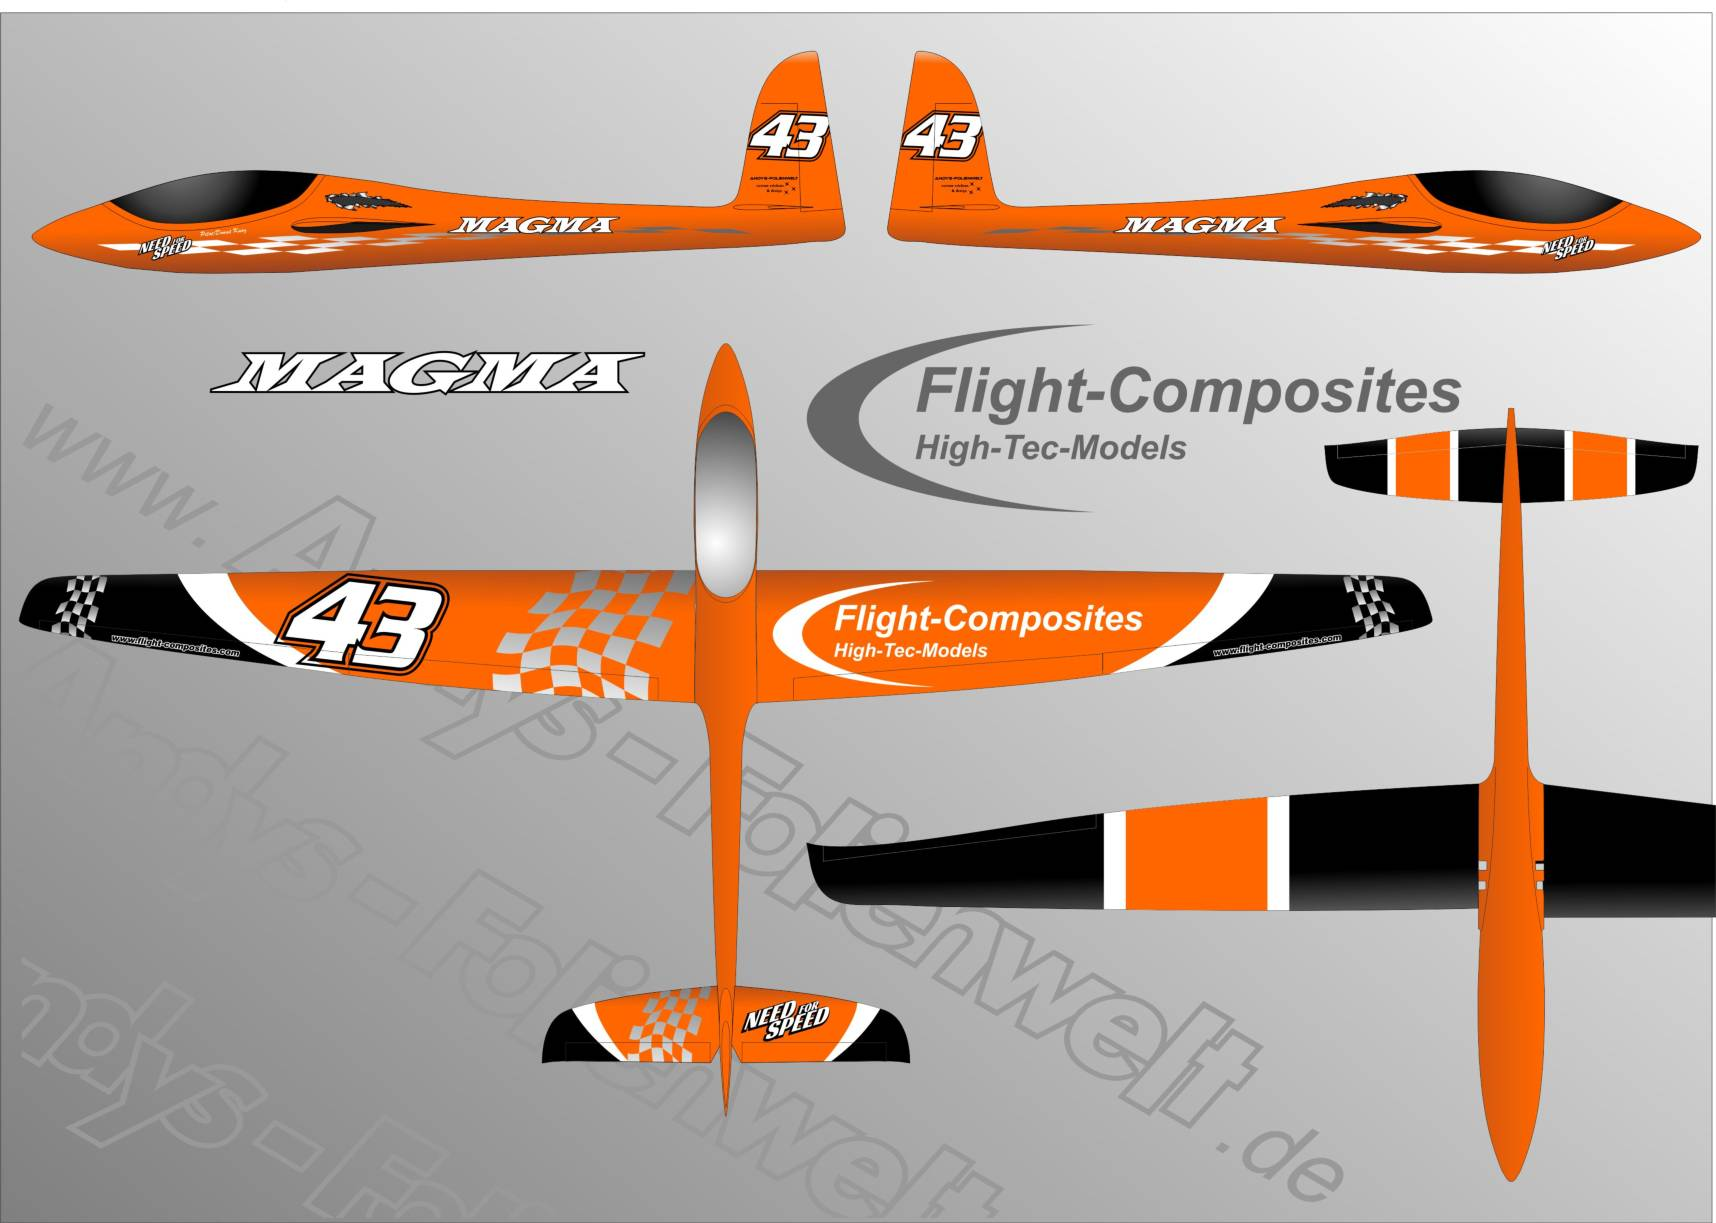 Magma Fligh Composites